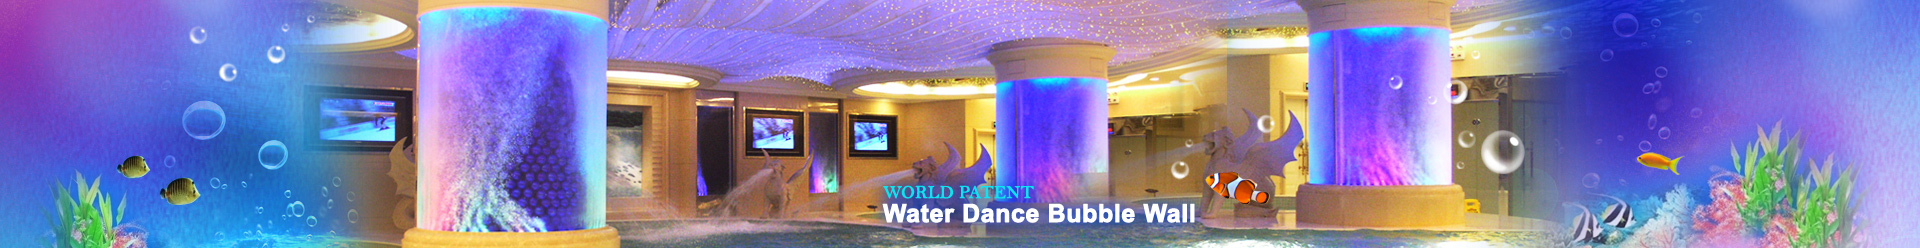 World Patent Water Dance Bubble Wall